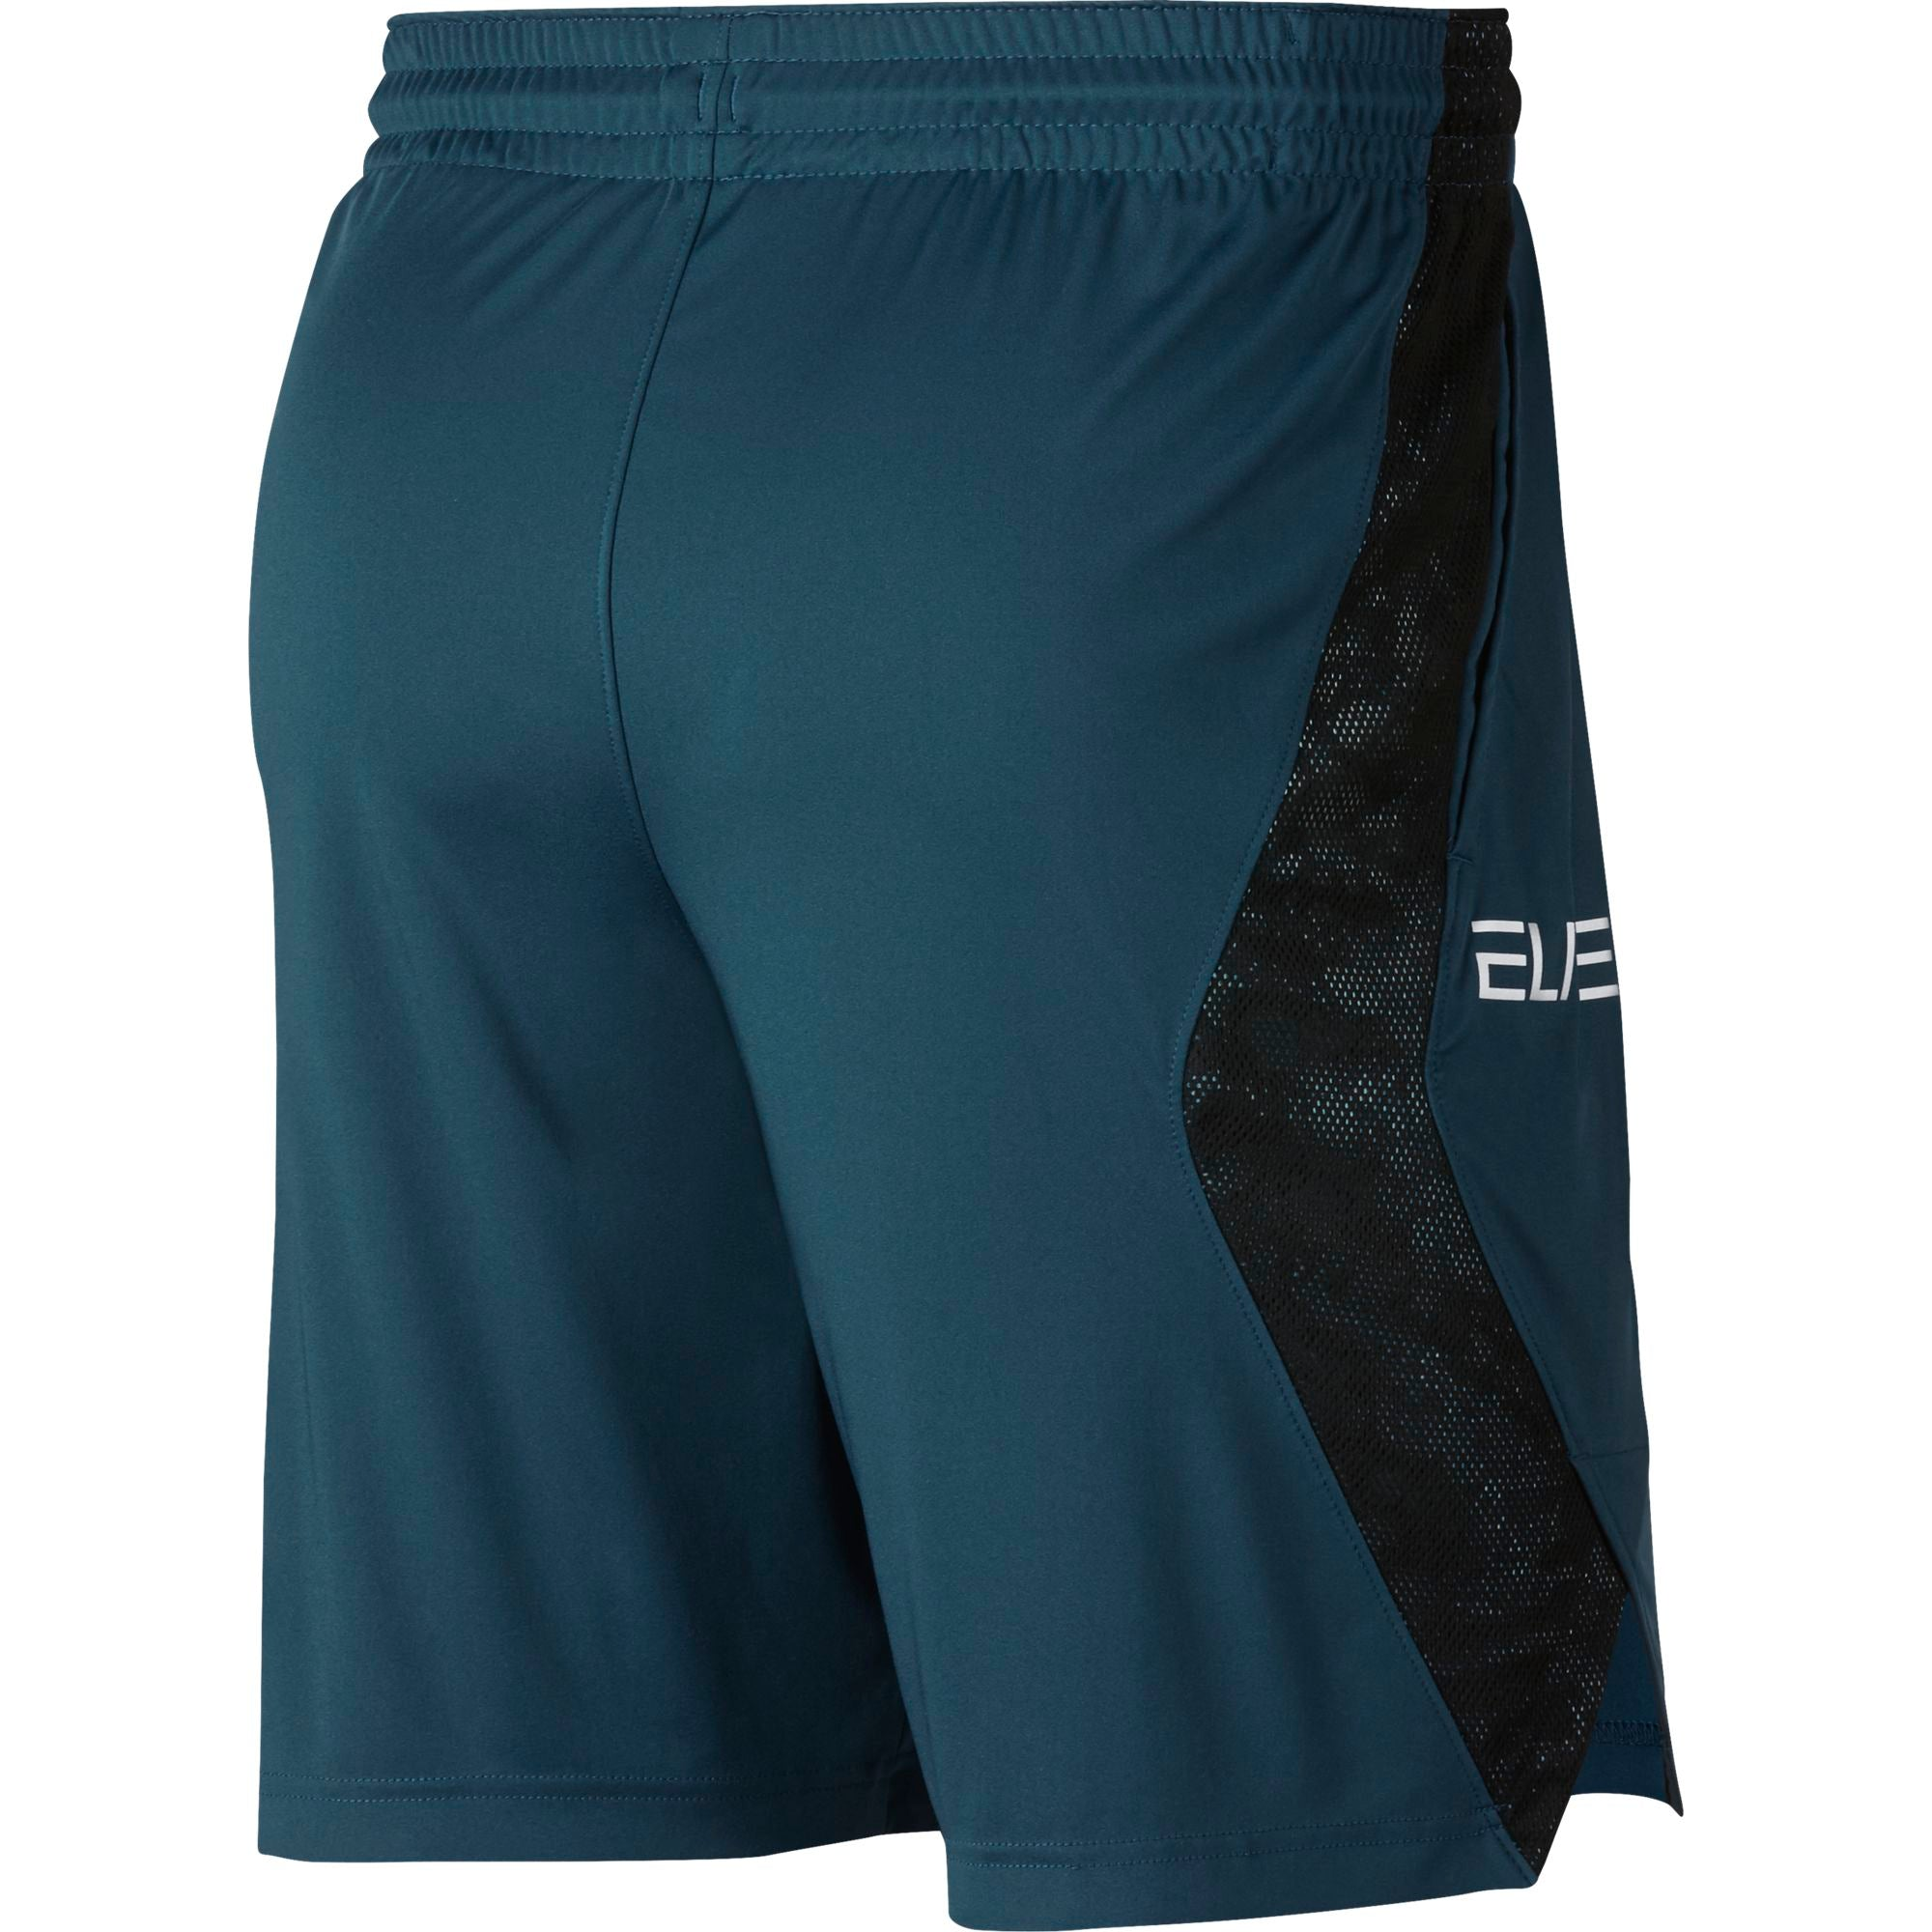 Nike Basketball Dry Shorts - Space Blue/Black/White